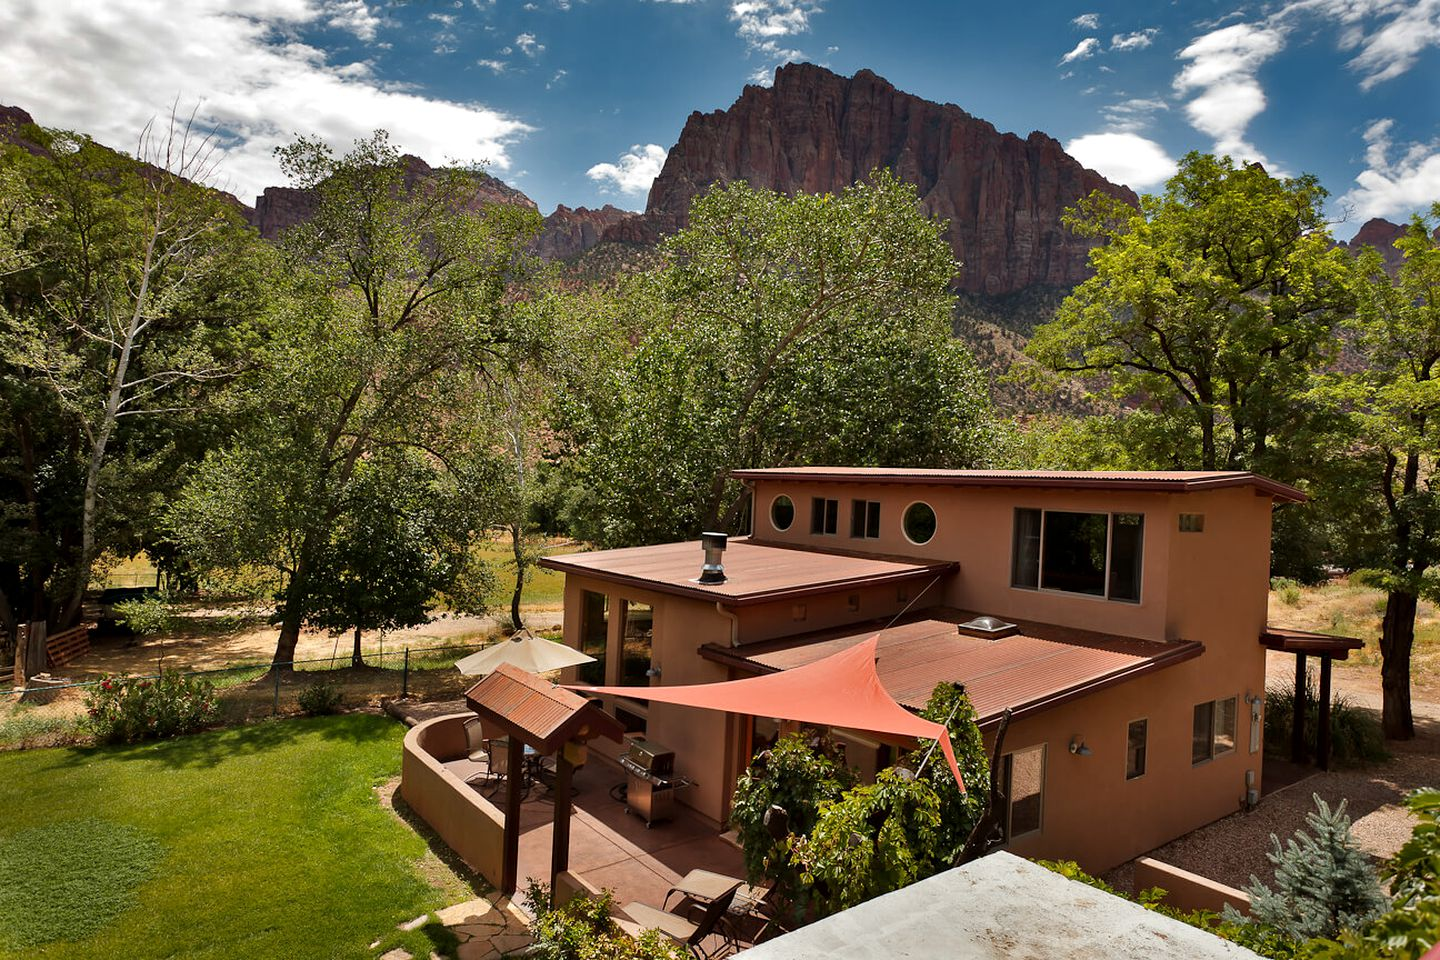 Villa rental surrounded by trees with rock cliffs in the distance in Zion Canyon, Utah.